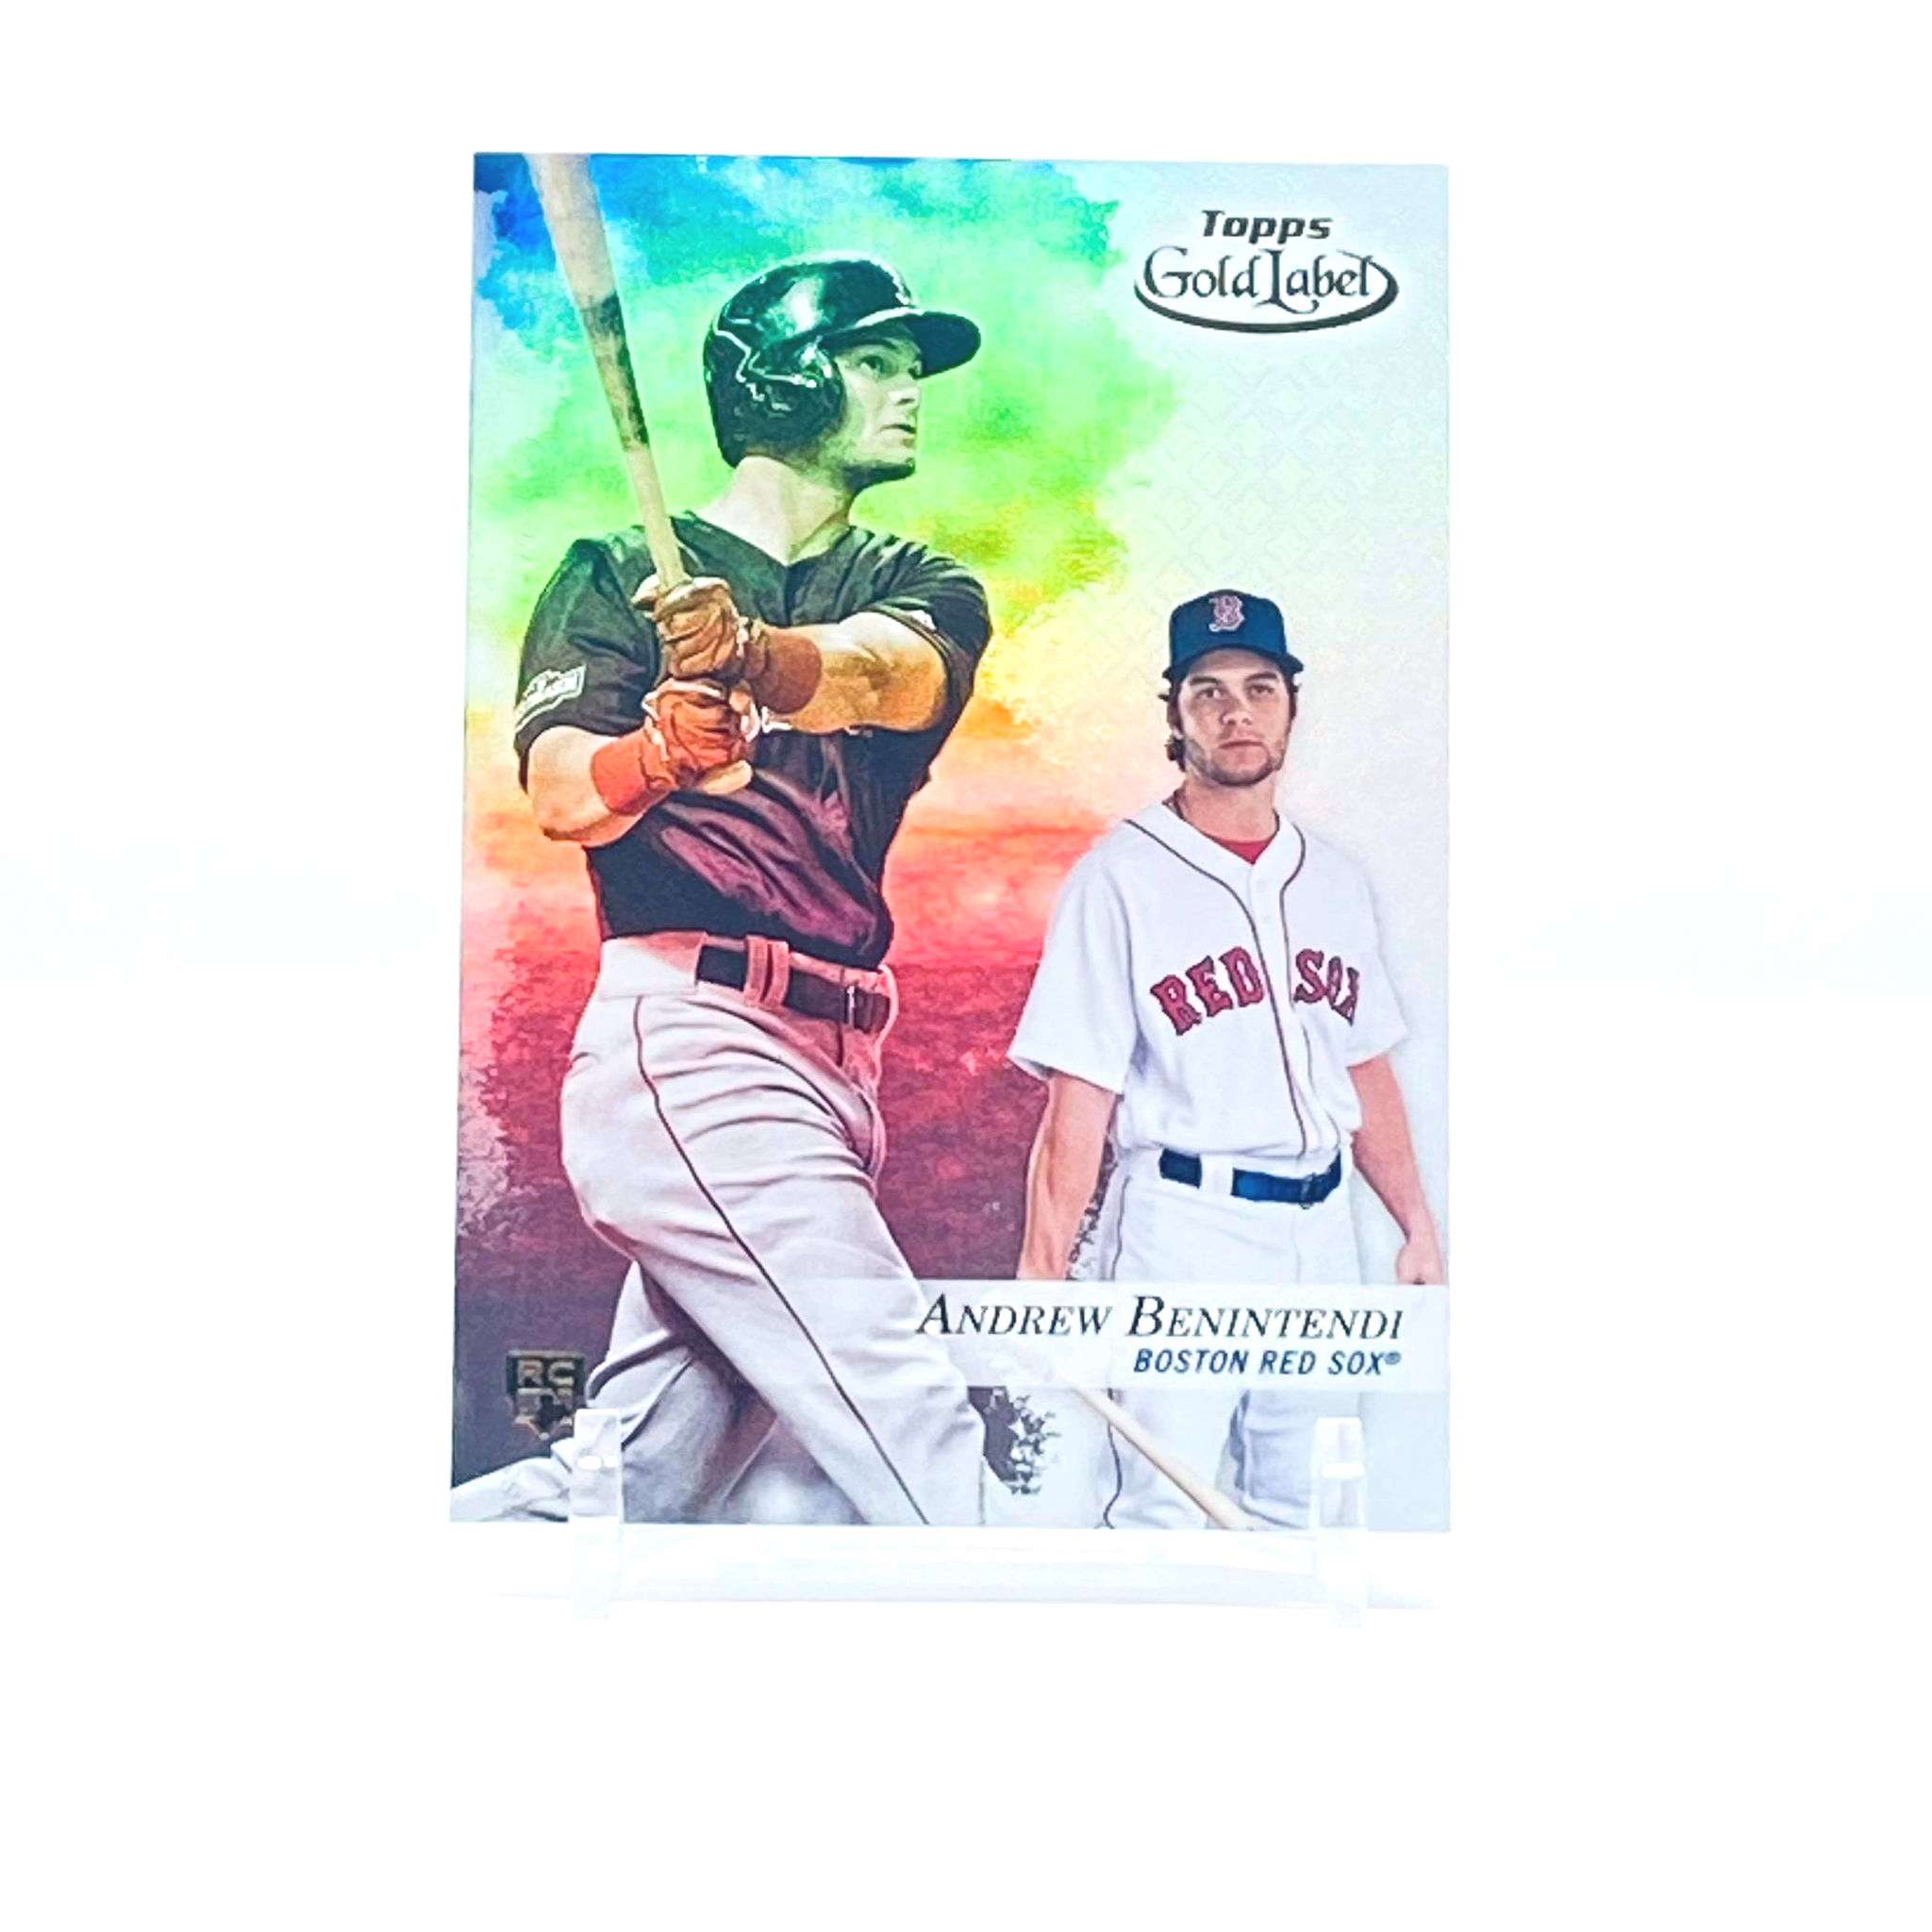 2017 Topps Gold Label Class 2 Andrew Benintendi Rookie Card Boston Red Sox